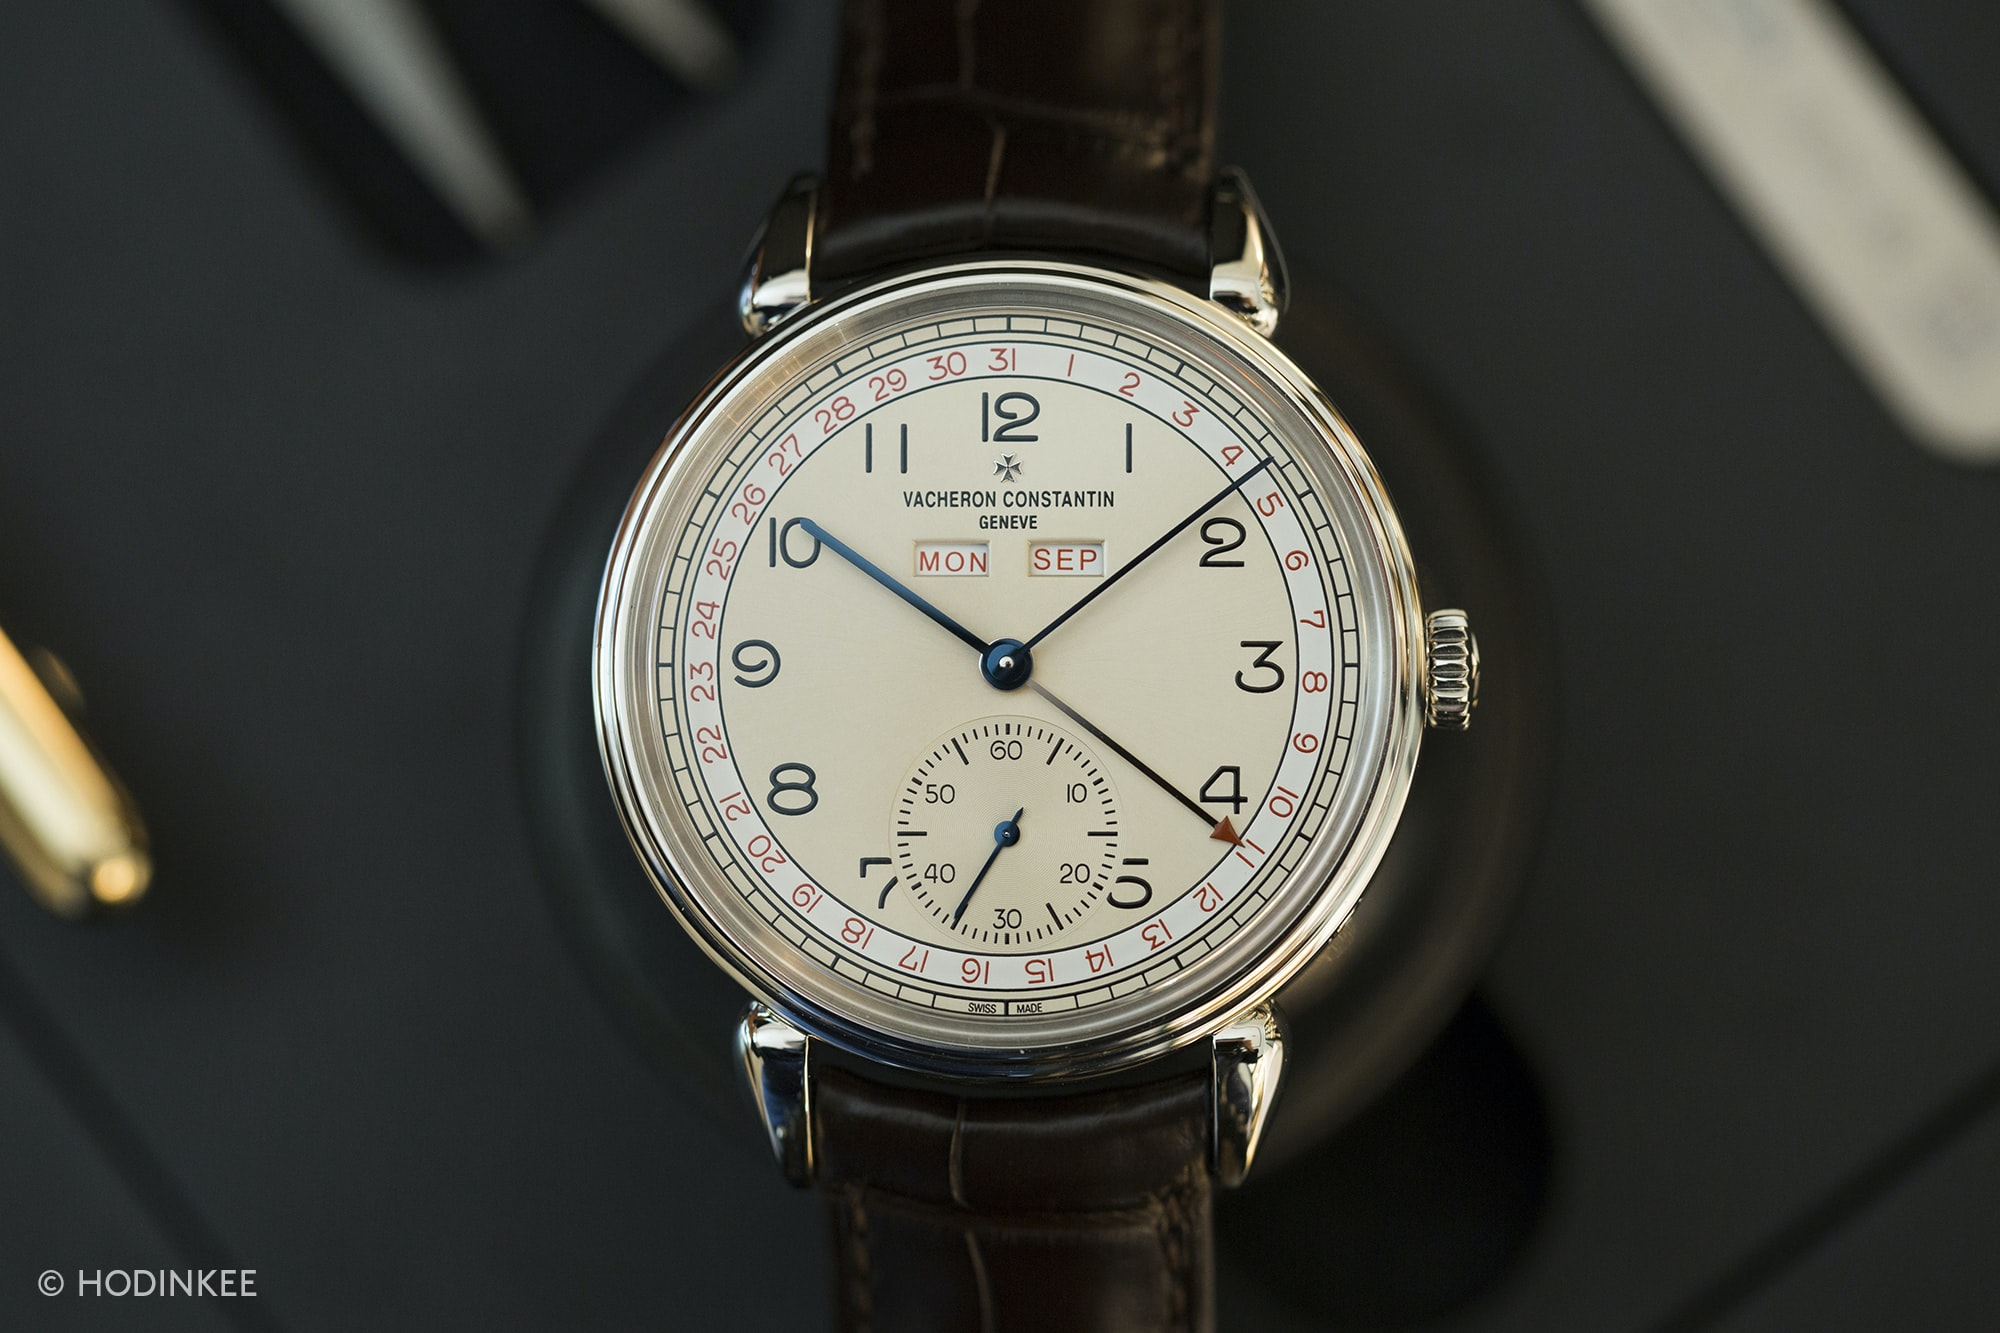 vacheron historiques calendrier 1942 Introducing: The New Vacheron Constantin Historiques: Triple Calendrier 1942 And 1948, And American 1921 Small (Exclusive Live Pics) Introducing: The New Vacheron Constantin Historiques: Triple Calendrier 1942 And 1948, And American 1921 Small (Exclusive Live Pics) 3H0A2912 copy